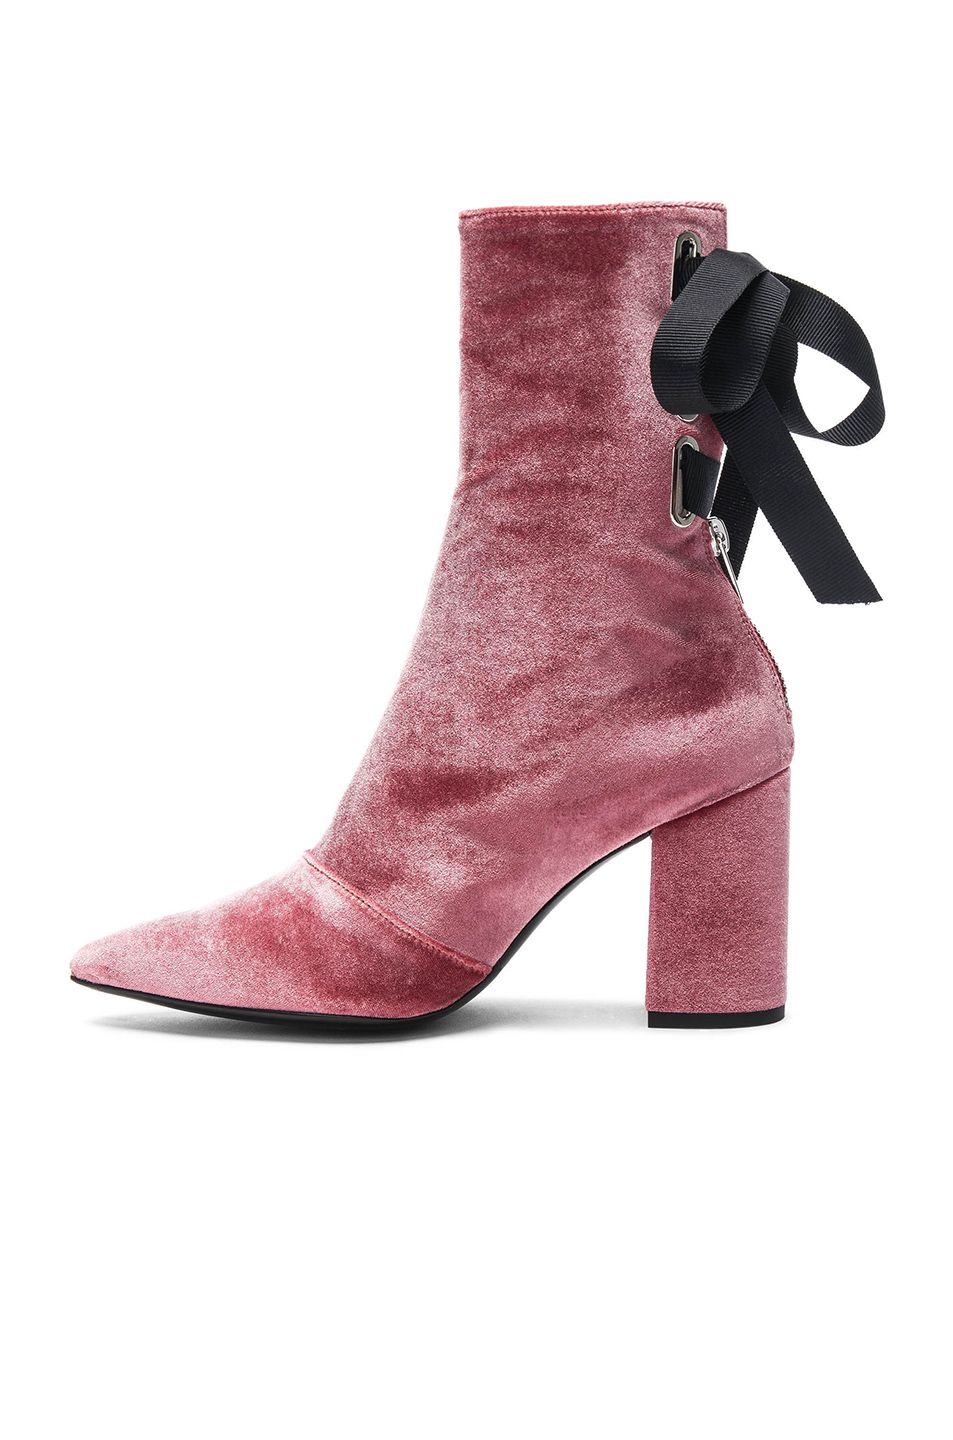 Clergerie Pink Velvet Lexie Boots